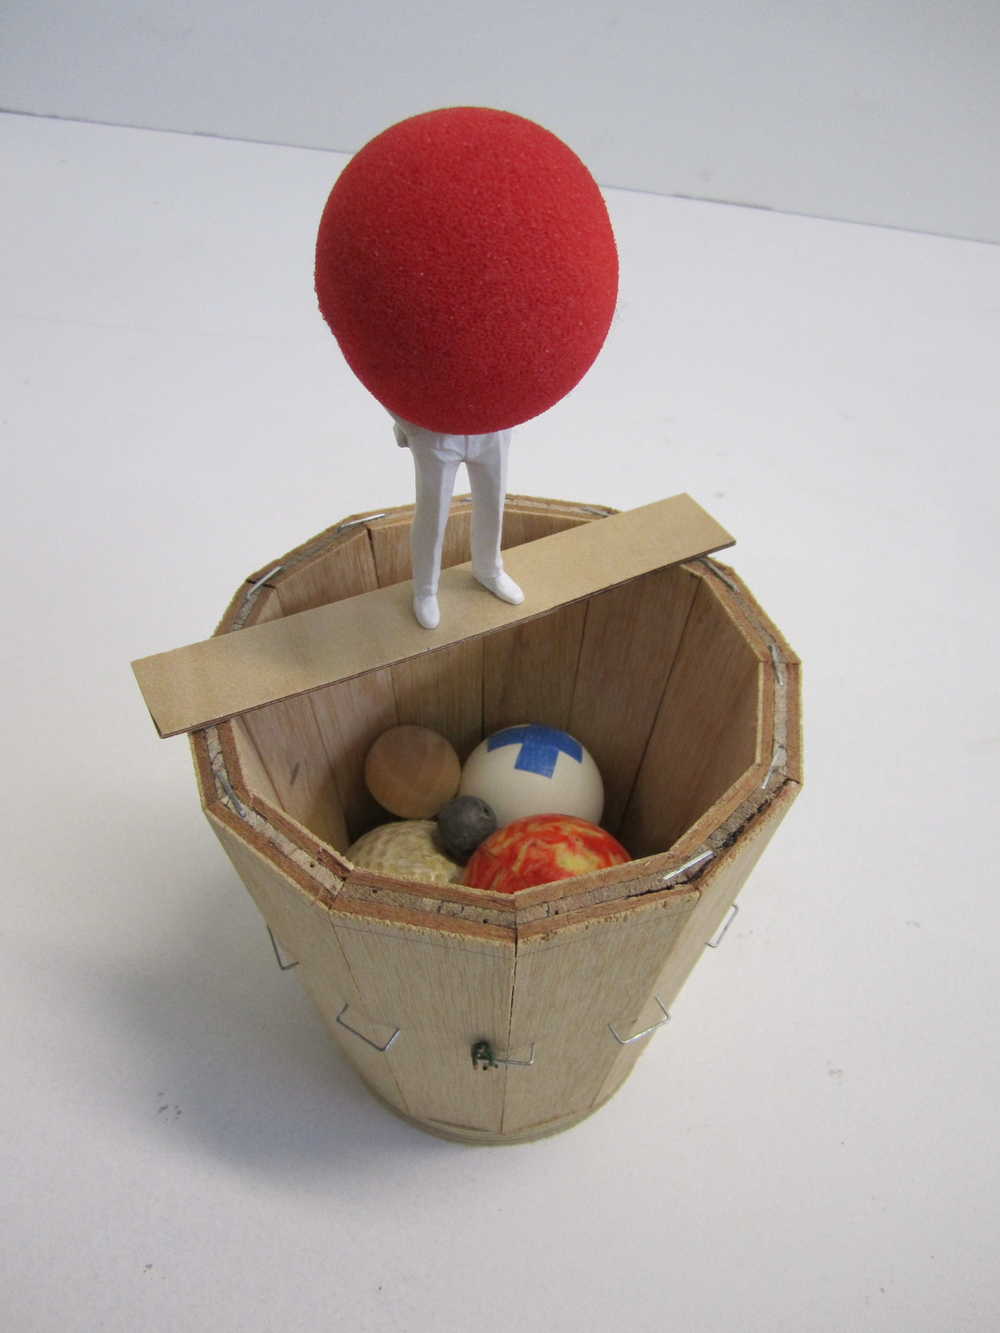 Orrery Storage, 2011    Foam, wood, mouse ball, golf ball, lead ball, rubber ball, table tennis ball, metal staples 24 x 13 x 13 cm